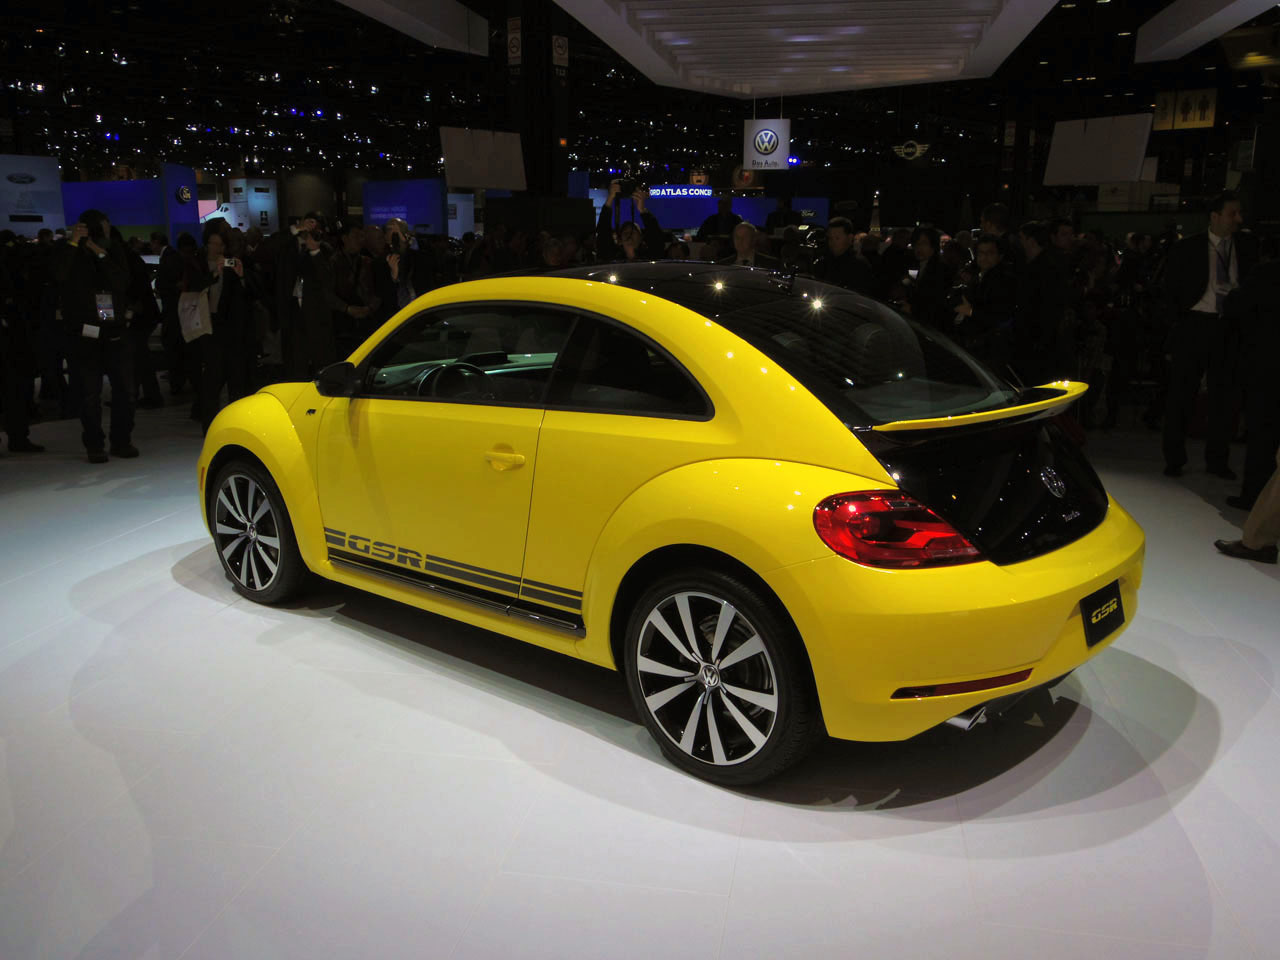 2014 Volkswagen Beetle GSR is black and yellow, black and yellow - Autoblog